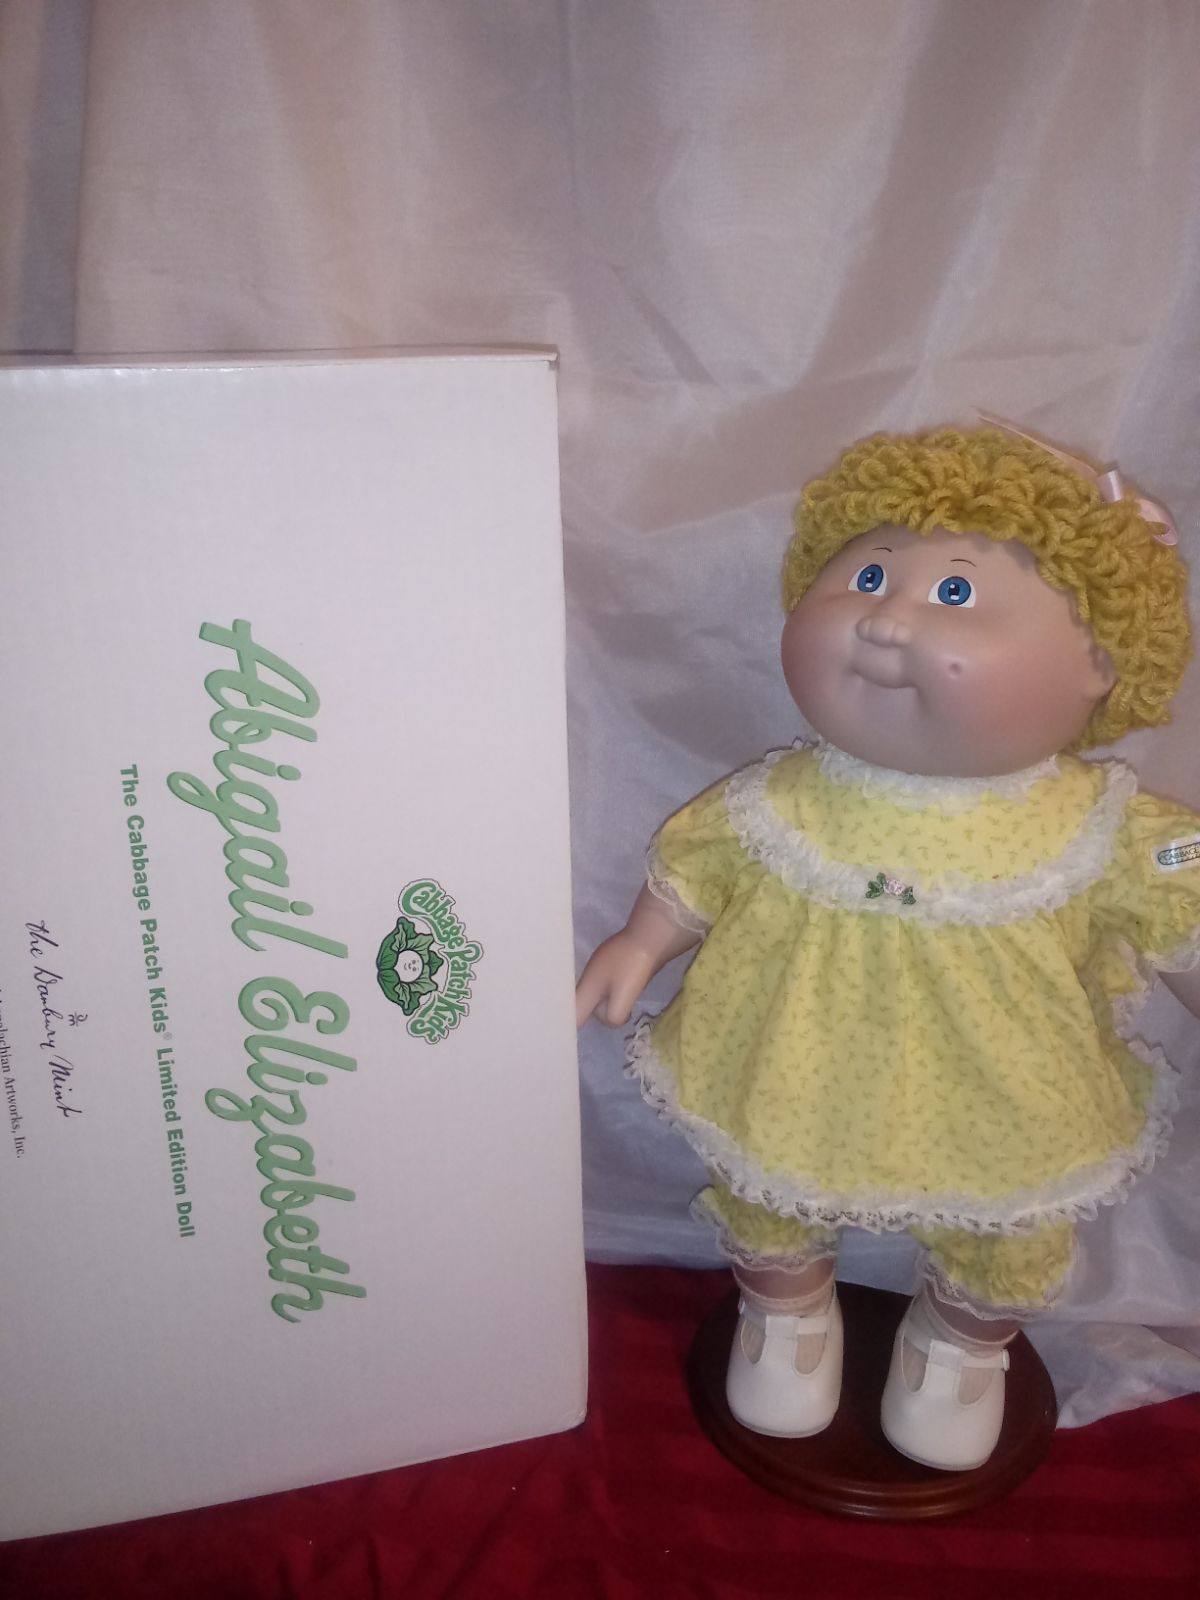 Limited Edition Cabbage Patch Collector Doll Abigail Elizabeth Condition Is Like New No Damages N Cabbage Patch Kids Cabbage Patch Kids Dolls Popular Toys